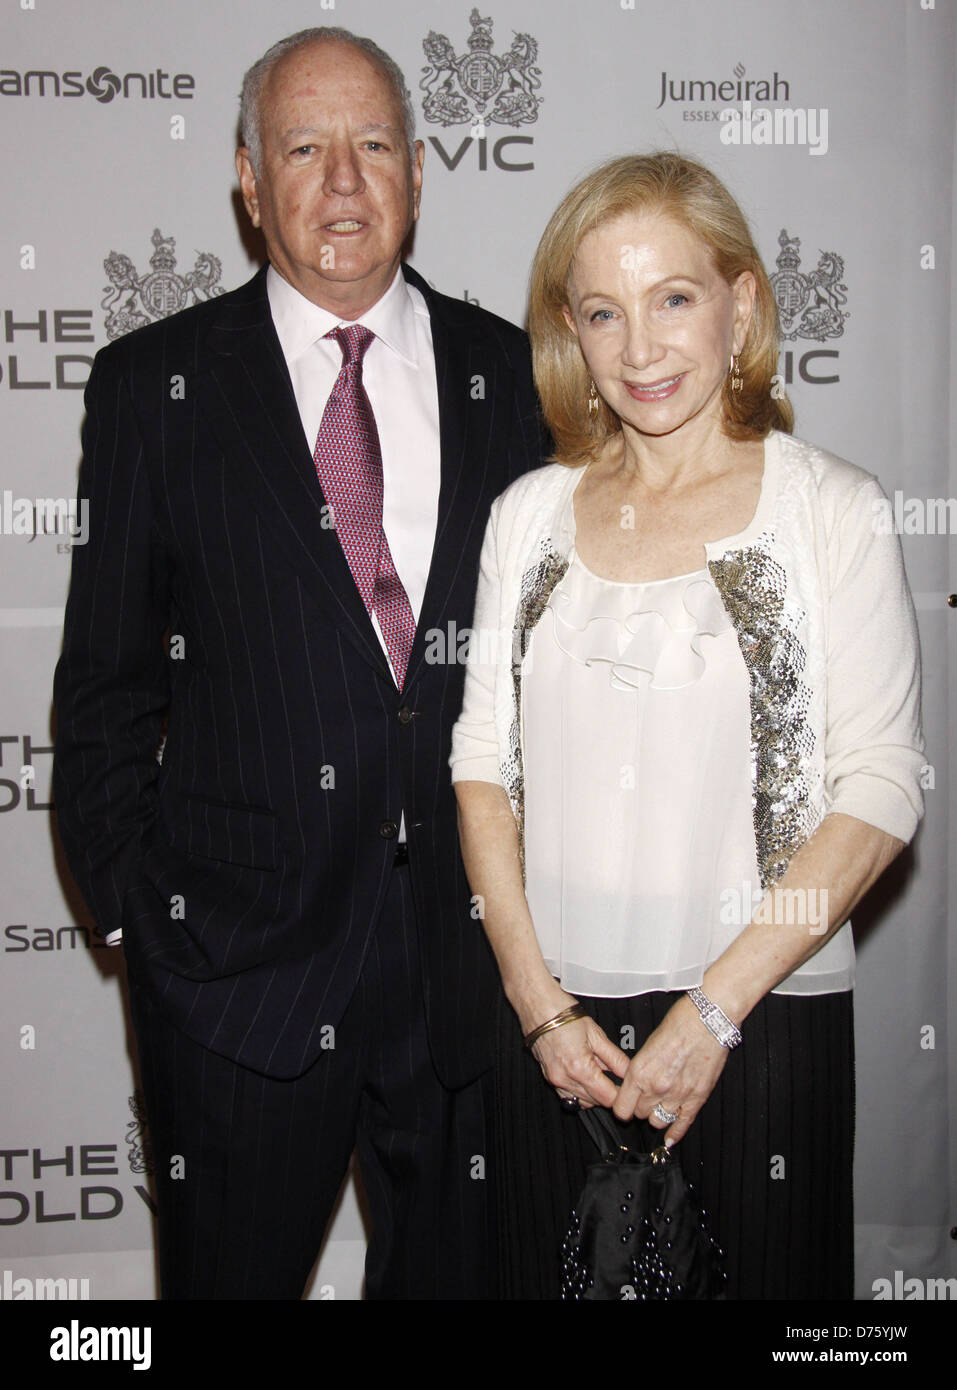 Peter J. Solomon and Susan Solomon The Old Vic Theatre Company Benefit held at Gotham Hall - Arrivals. New York - Stock Image